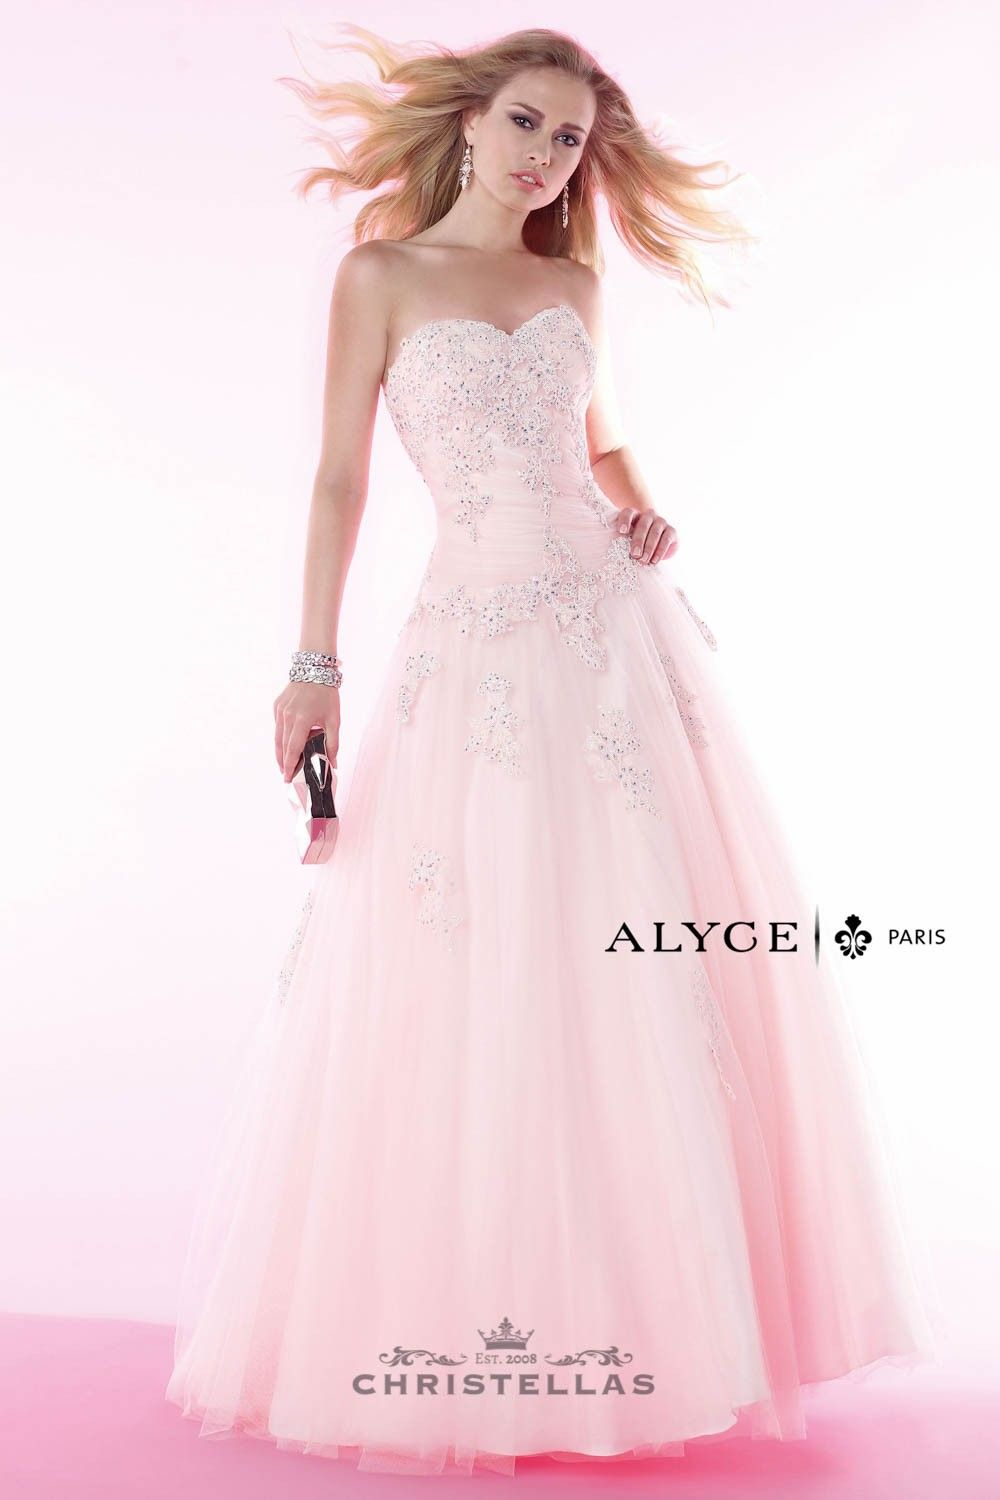 Go princess diva in this gorgeous drop waist A-line ball gown! Alyce 6379 Dress Paris Collection / $450 - shop the look at www.christellas.com #prom #dresses #Alyce